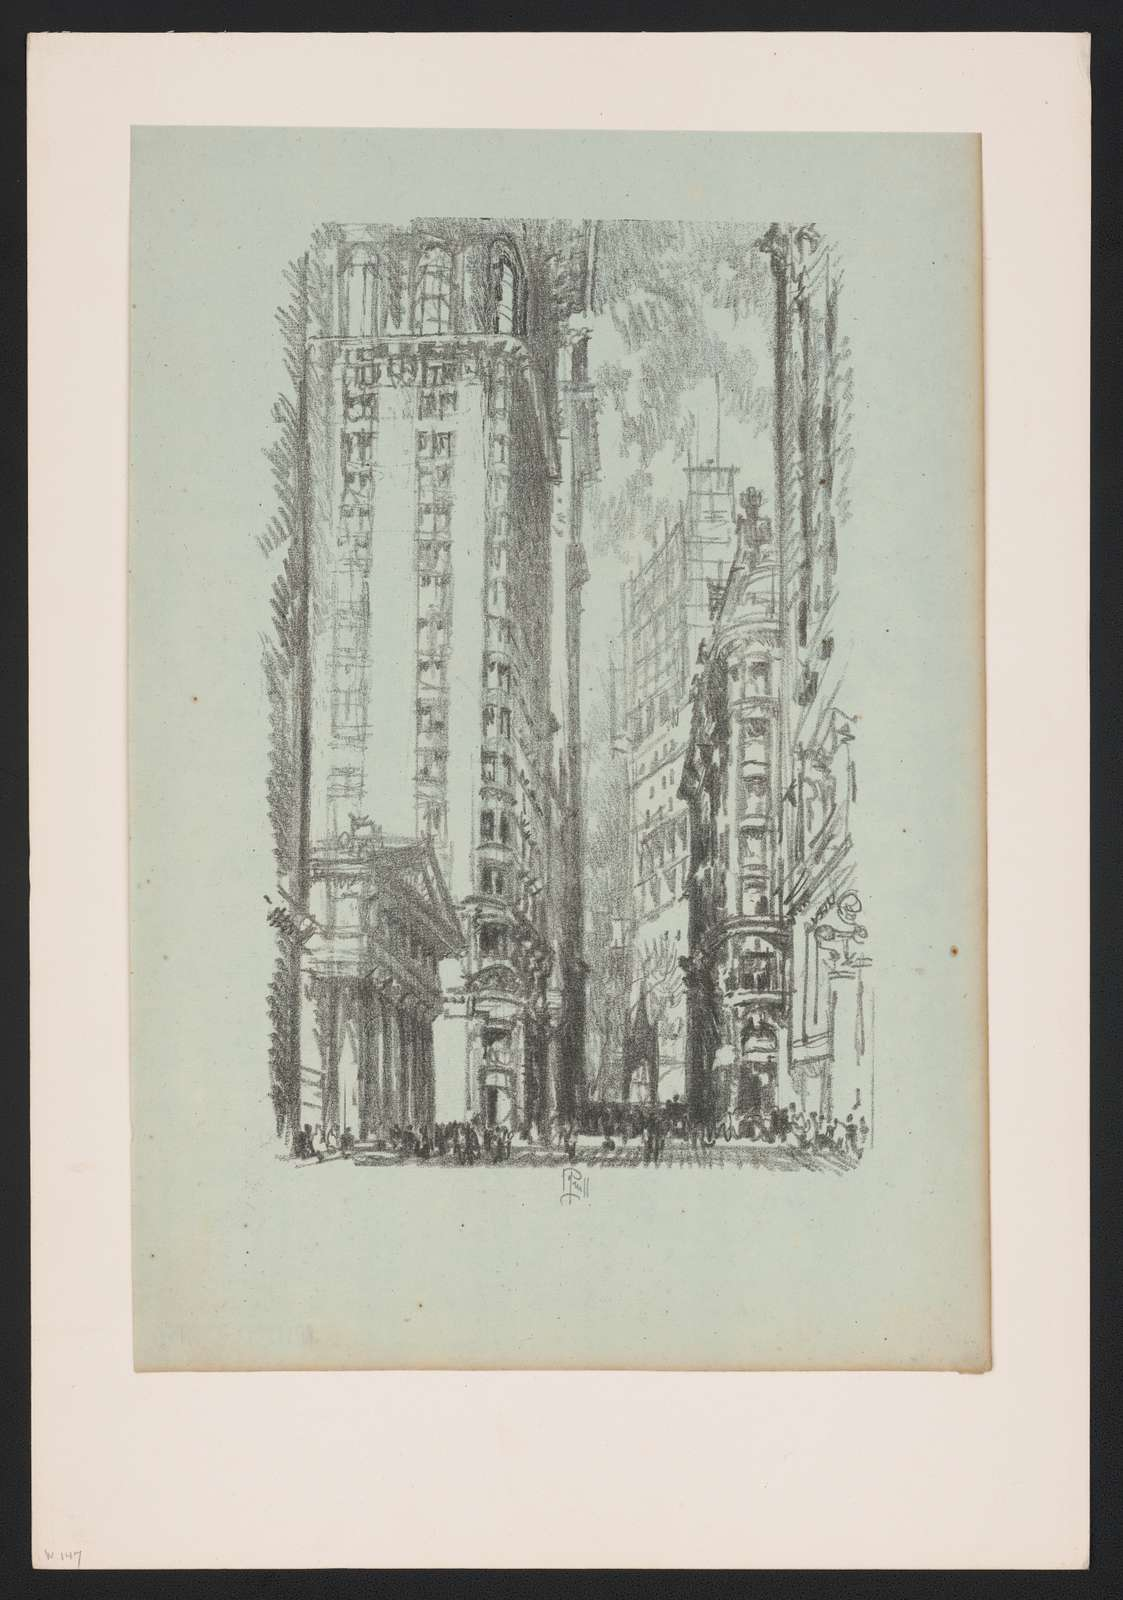 Lithographs of New York in 1904 drawn by Joseph Pennell. No. 6, Pine Street J. Pennell